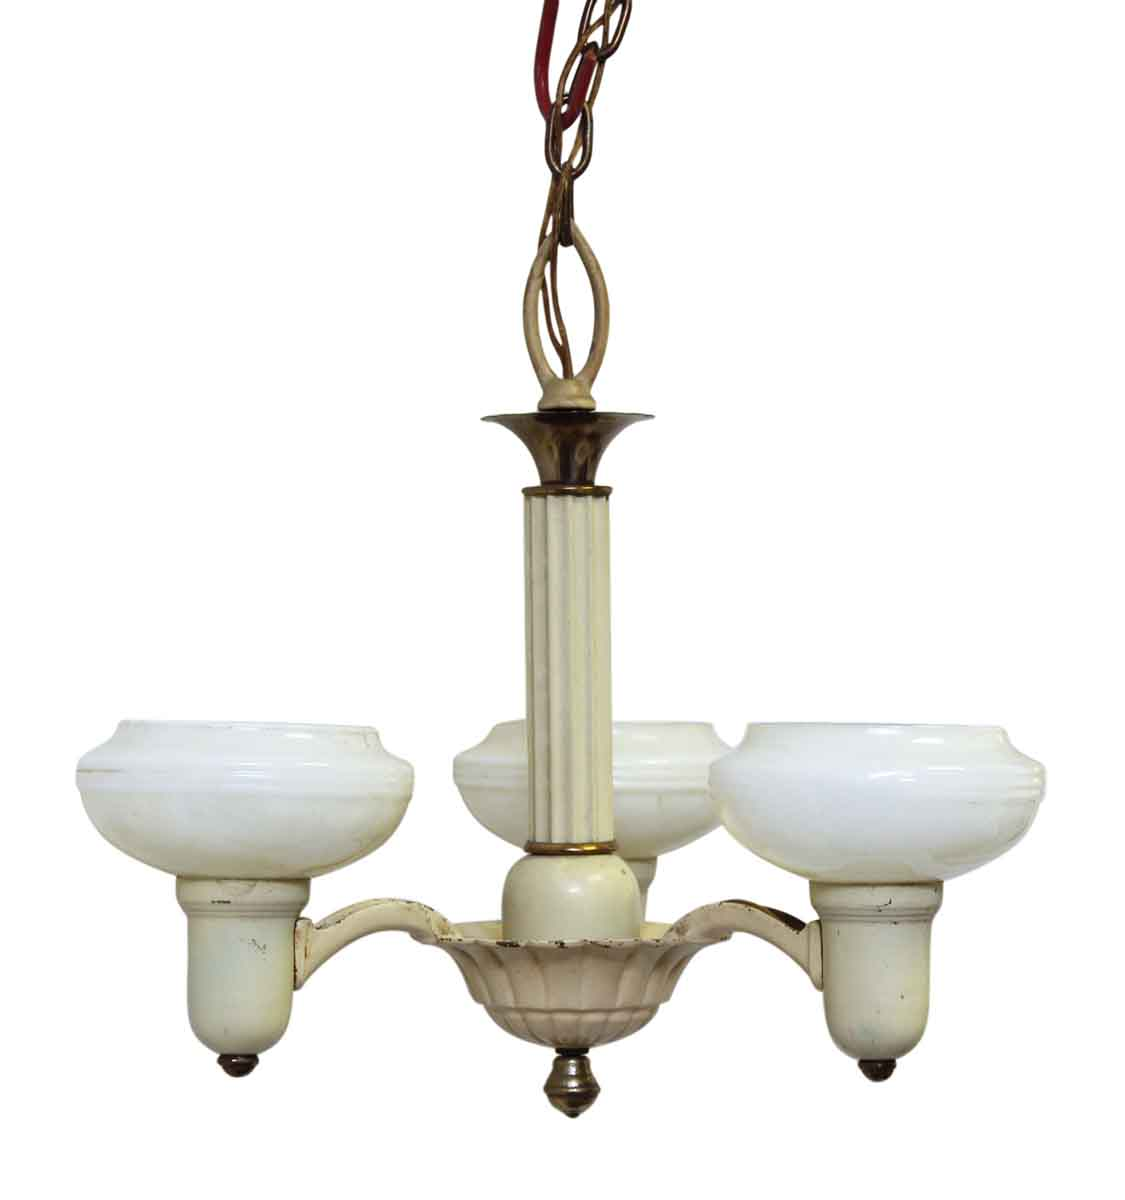 vintage 3 arm yellow chandelier with white glass shades olde good things. Black Bedroom Furniture Sets. Home Design Ideas